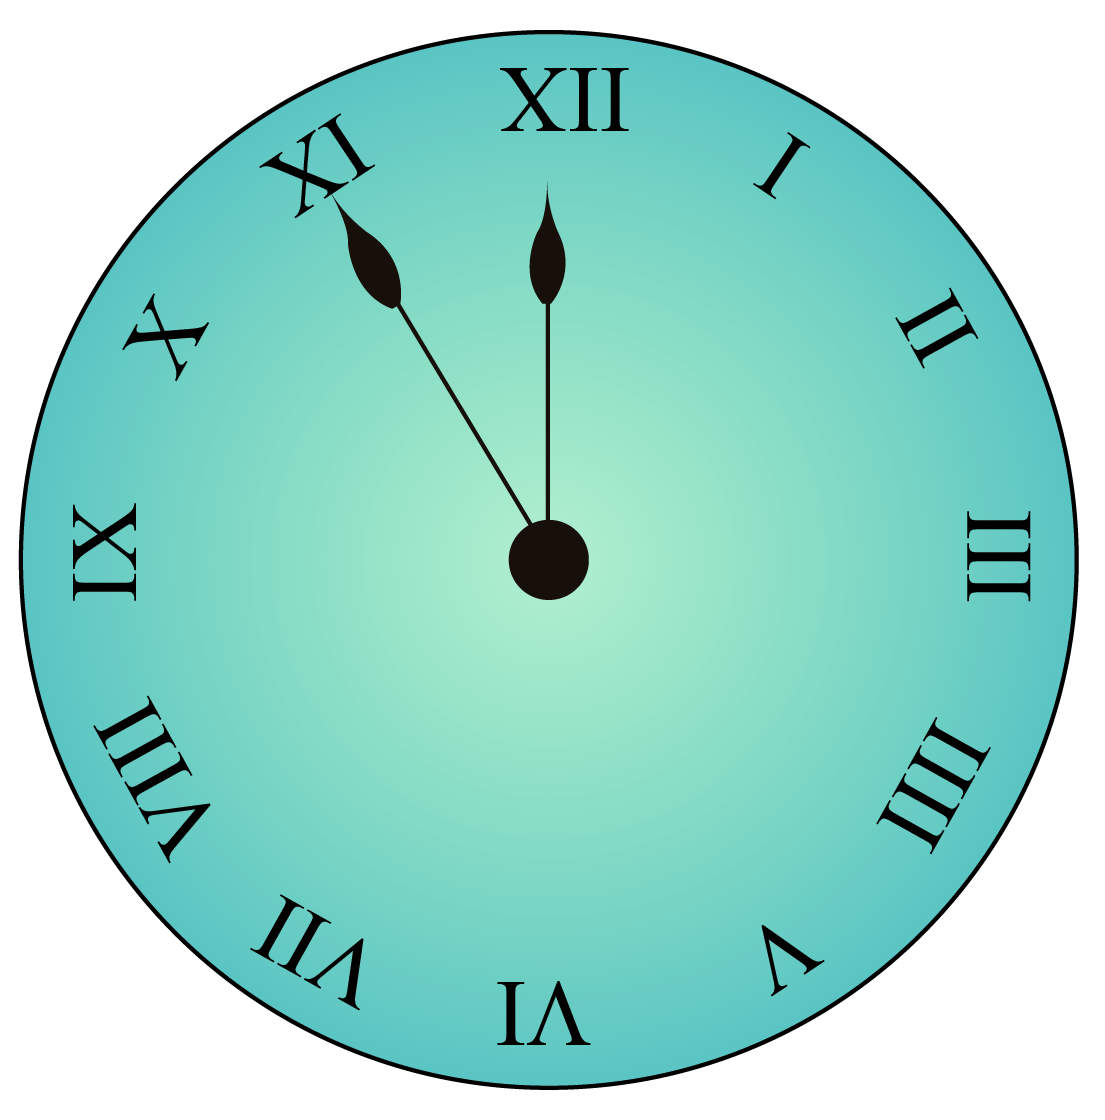 a clock with Roman numerals indicating the time